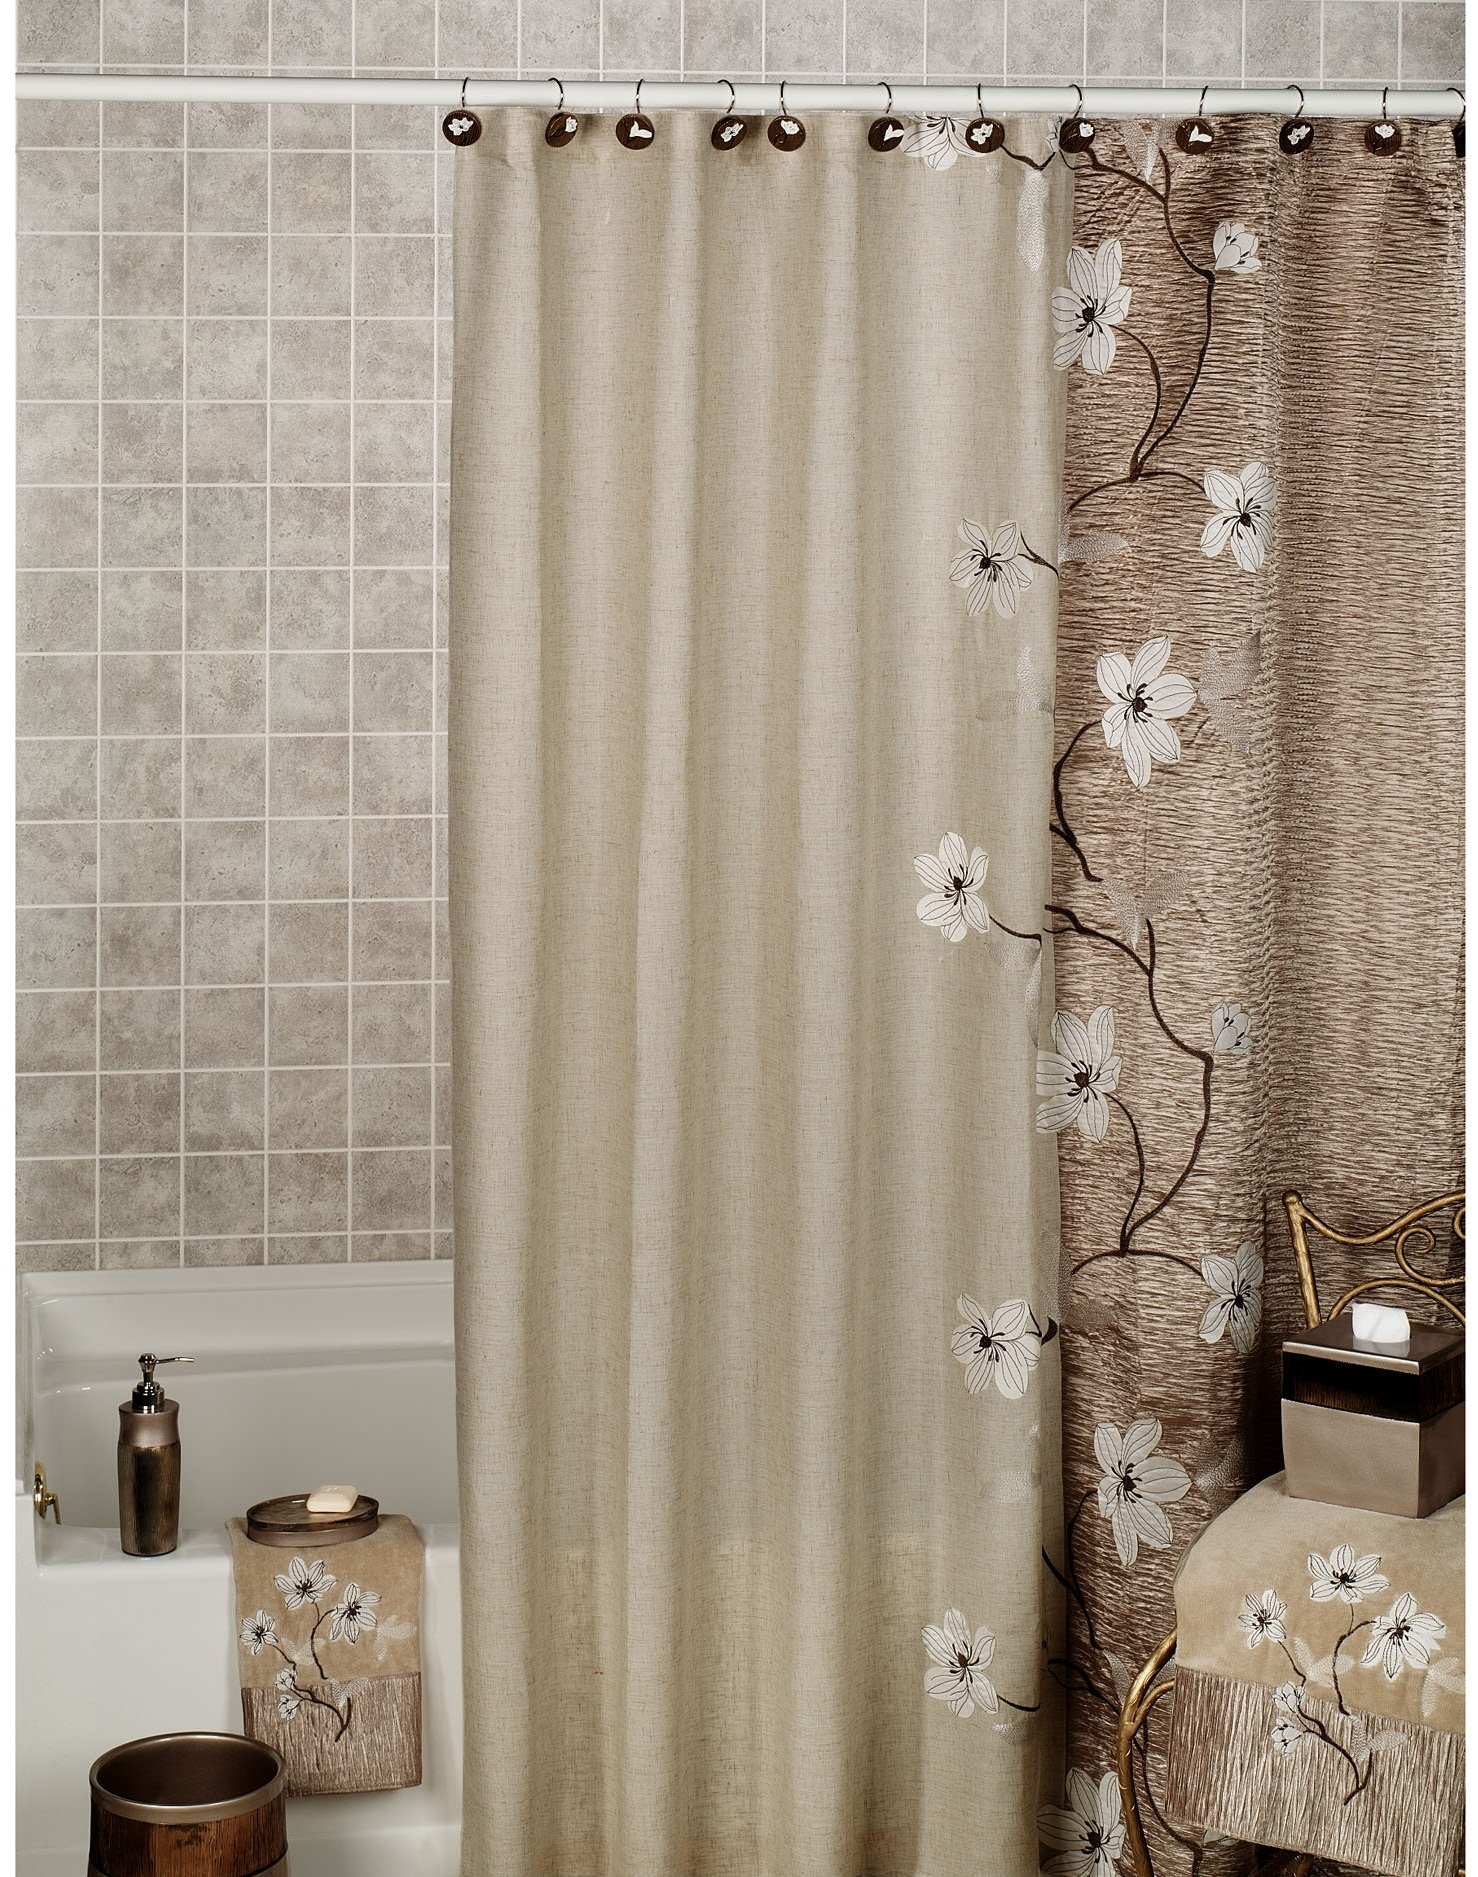 Extra Long Blackout Curtains Home Design Ideas Gigforest With Extra Long Thermal Curtains (Photo 6 of 15)